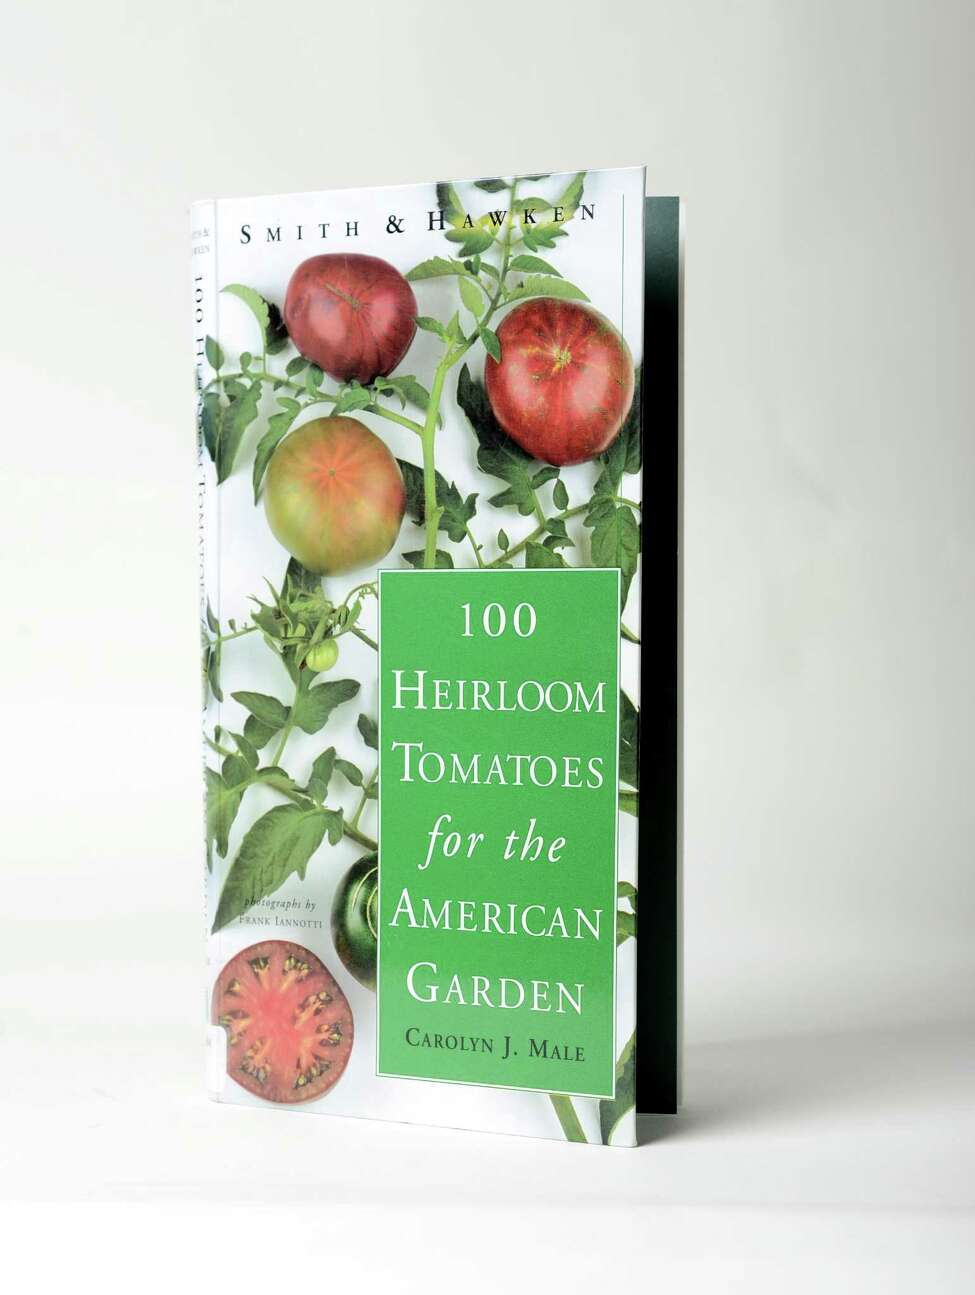 a€œ100 Heirloom Tomatoes for the American Garden,a€ Carolyn J. Male, Wednesday Aug. 13, 2014, at the Times Union in Colonie, N.Y. (Will Waldron/Times Union)